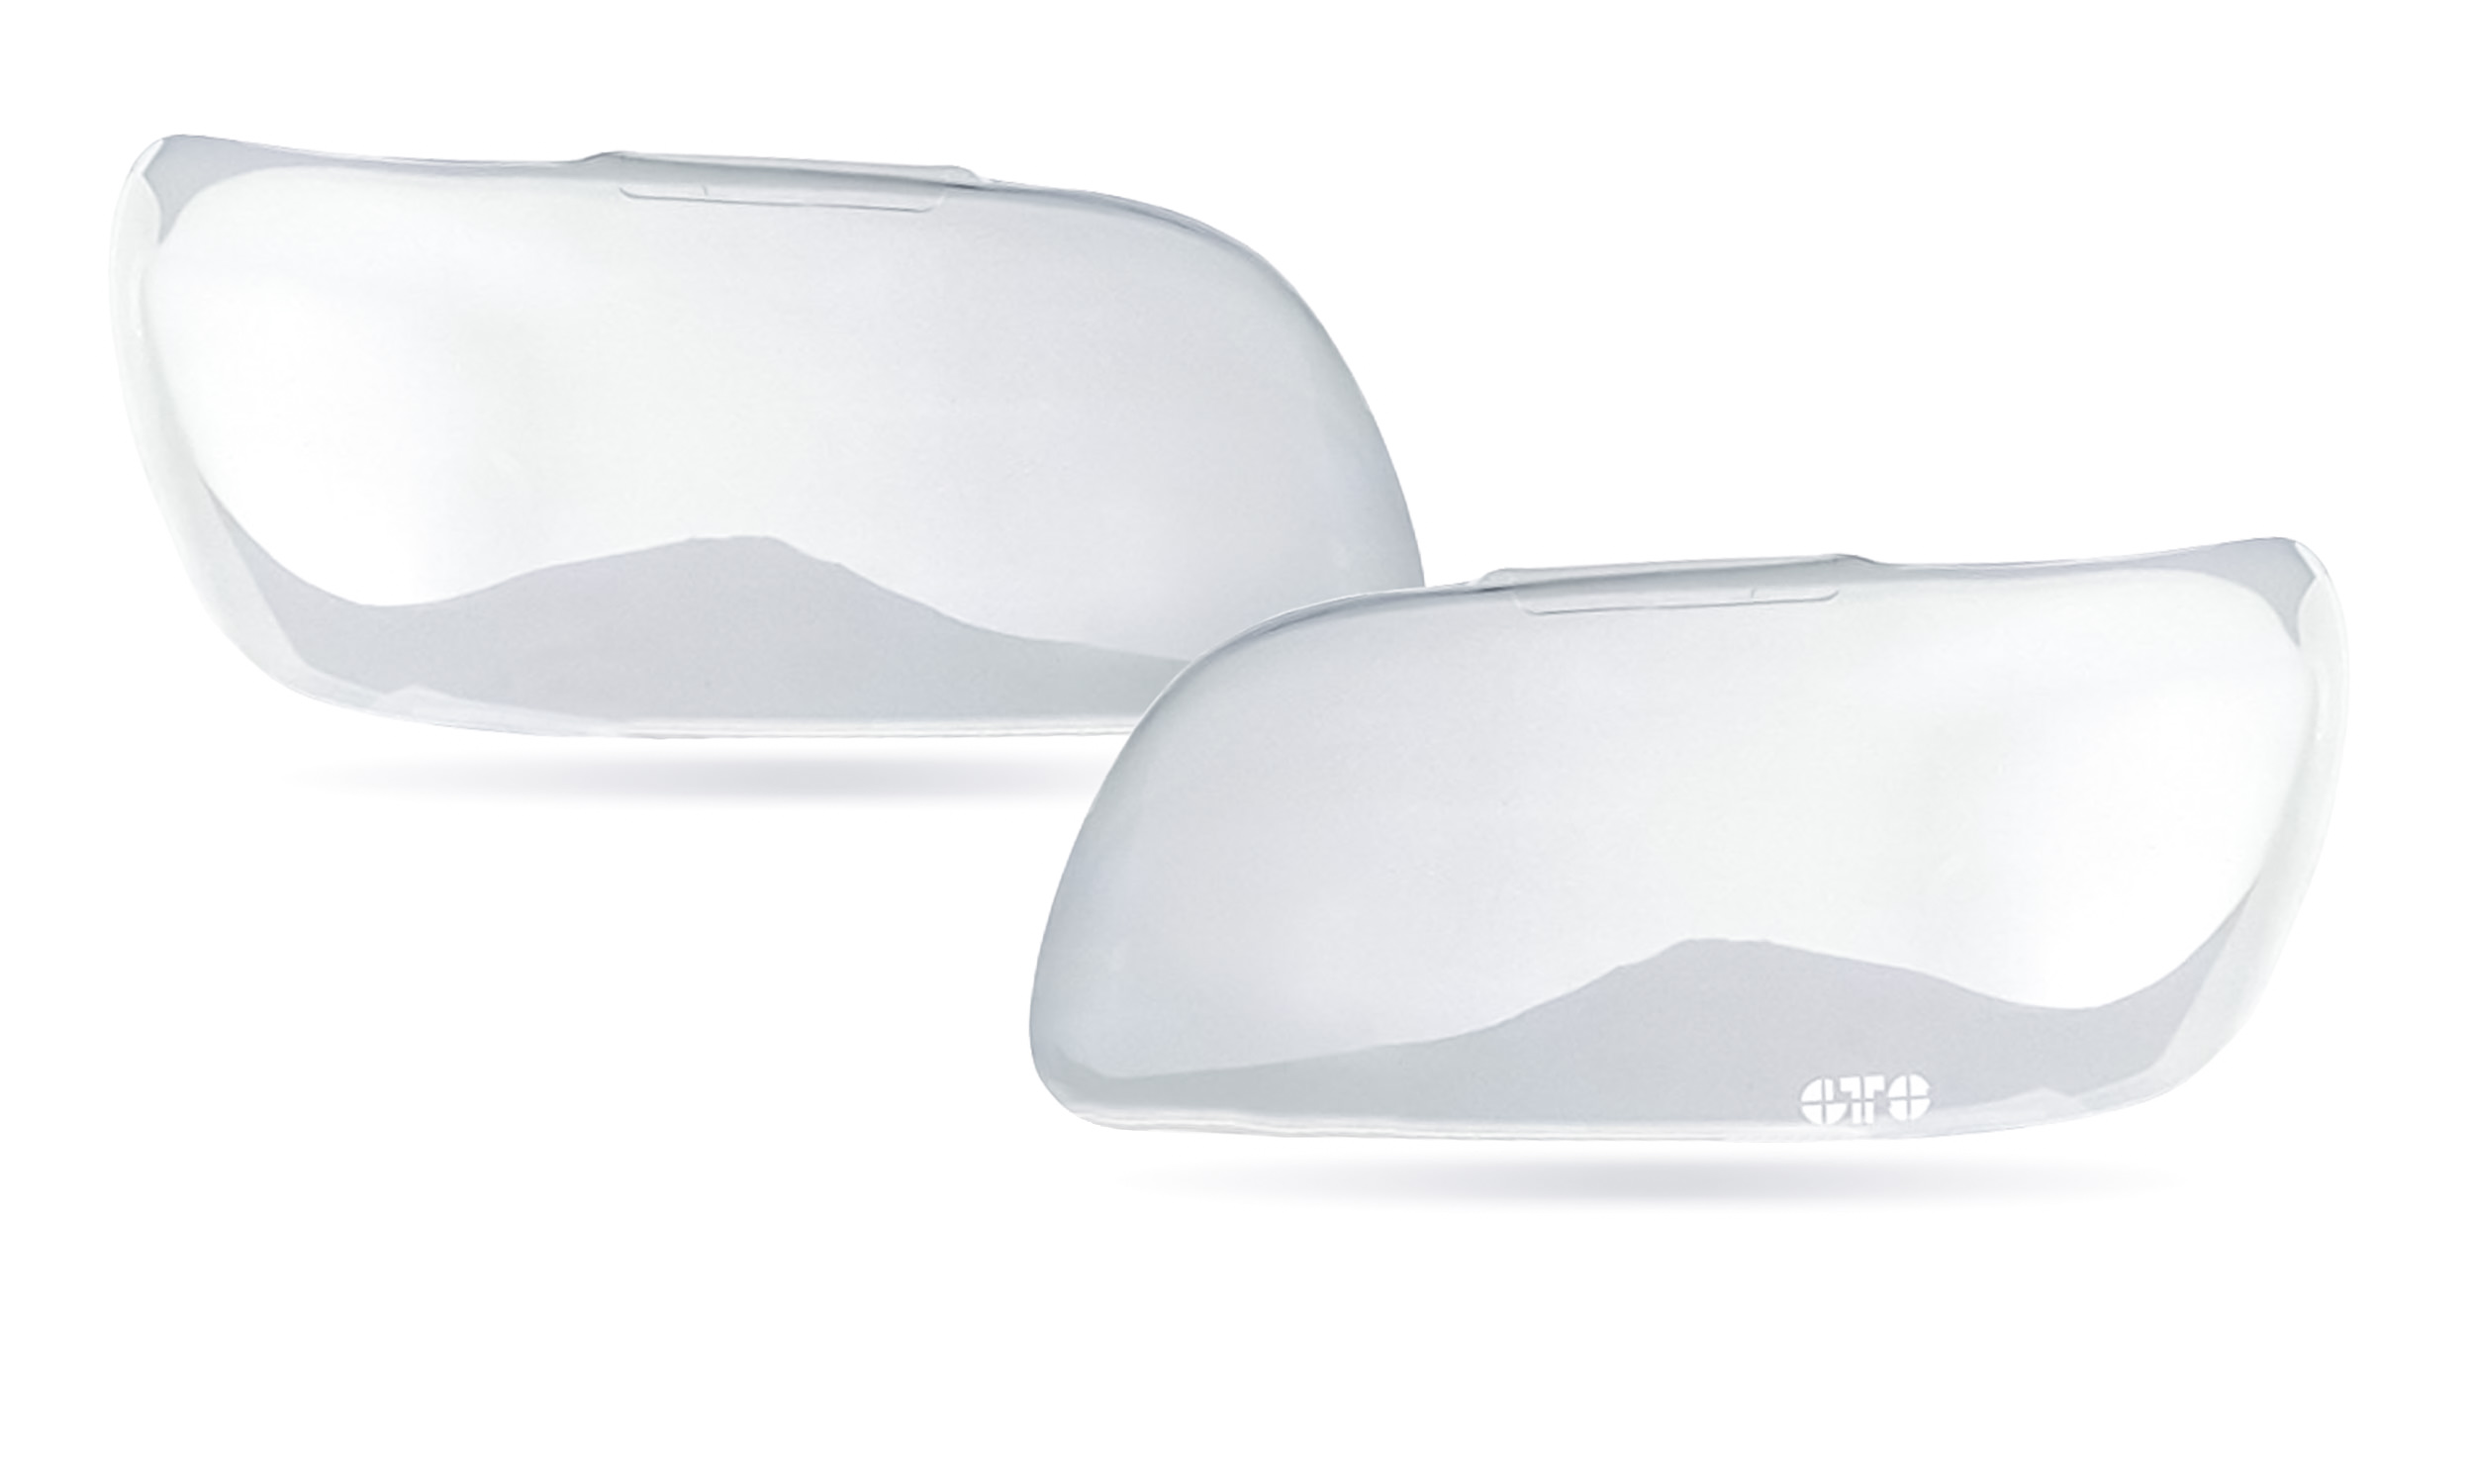 GT Styling GT0189C Headlight Covers Clear 2 pc Headlight Covers